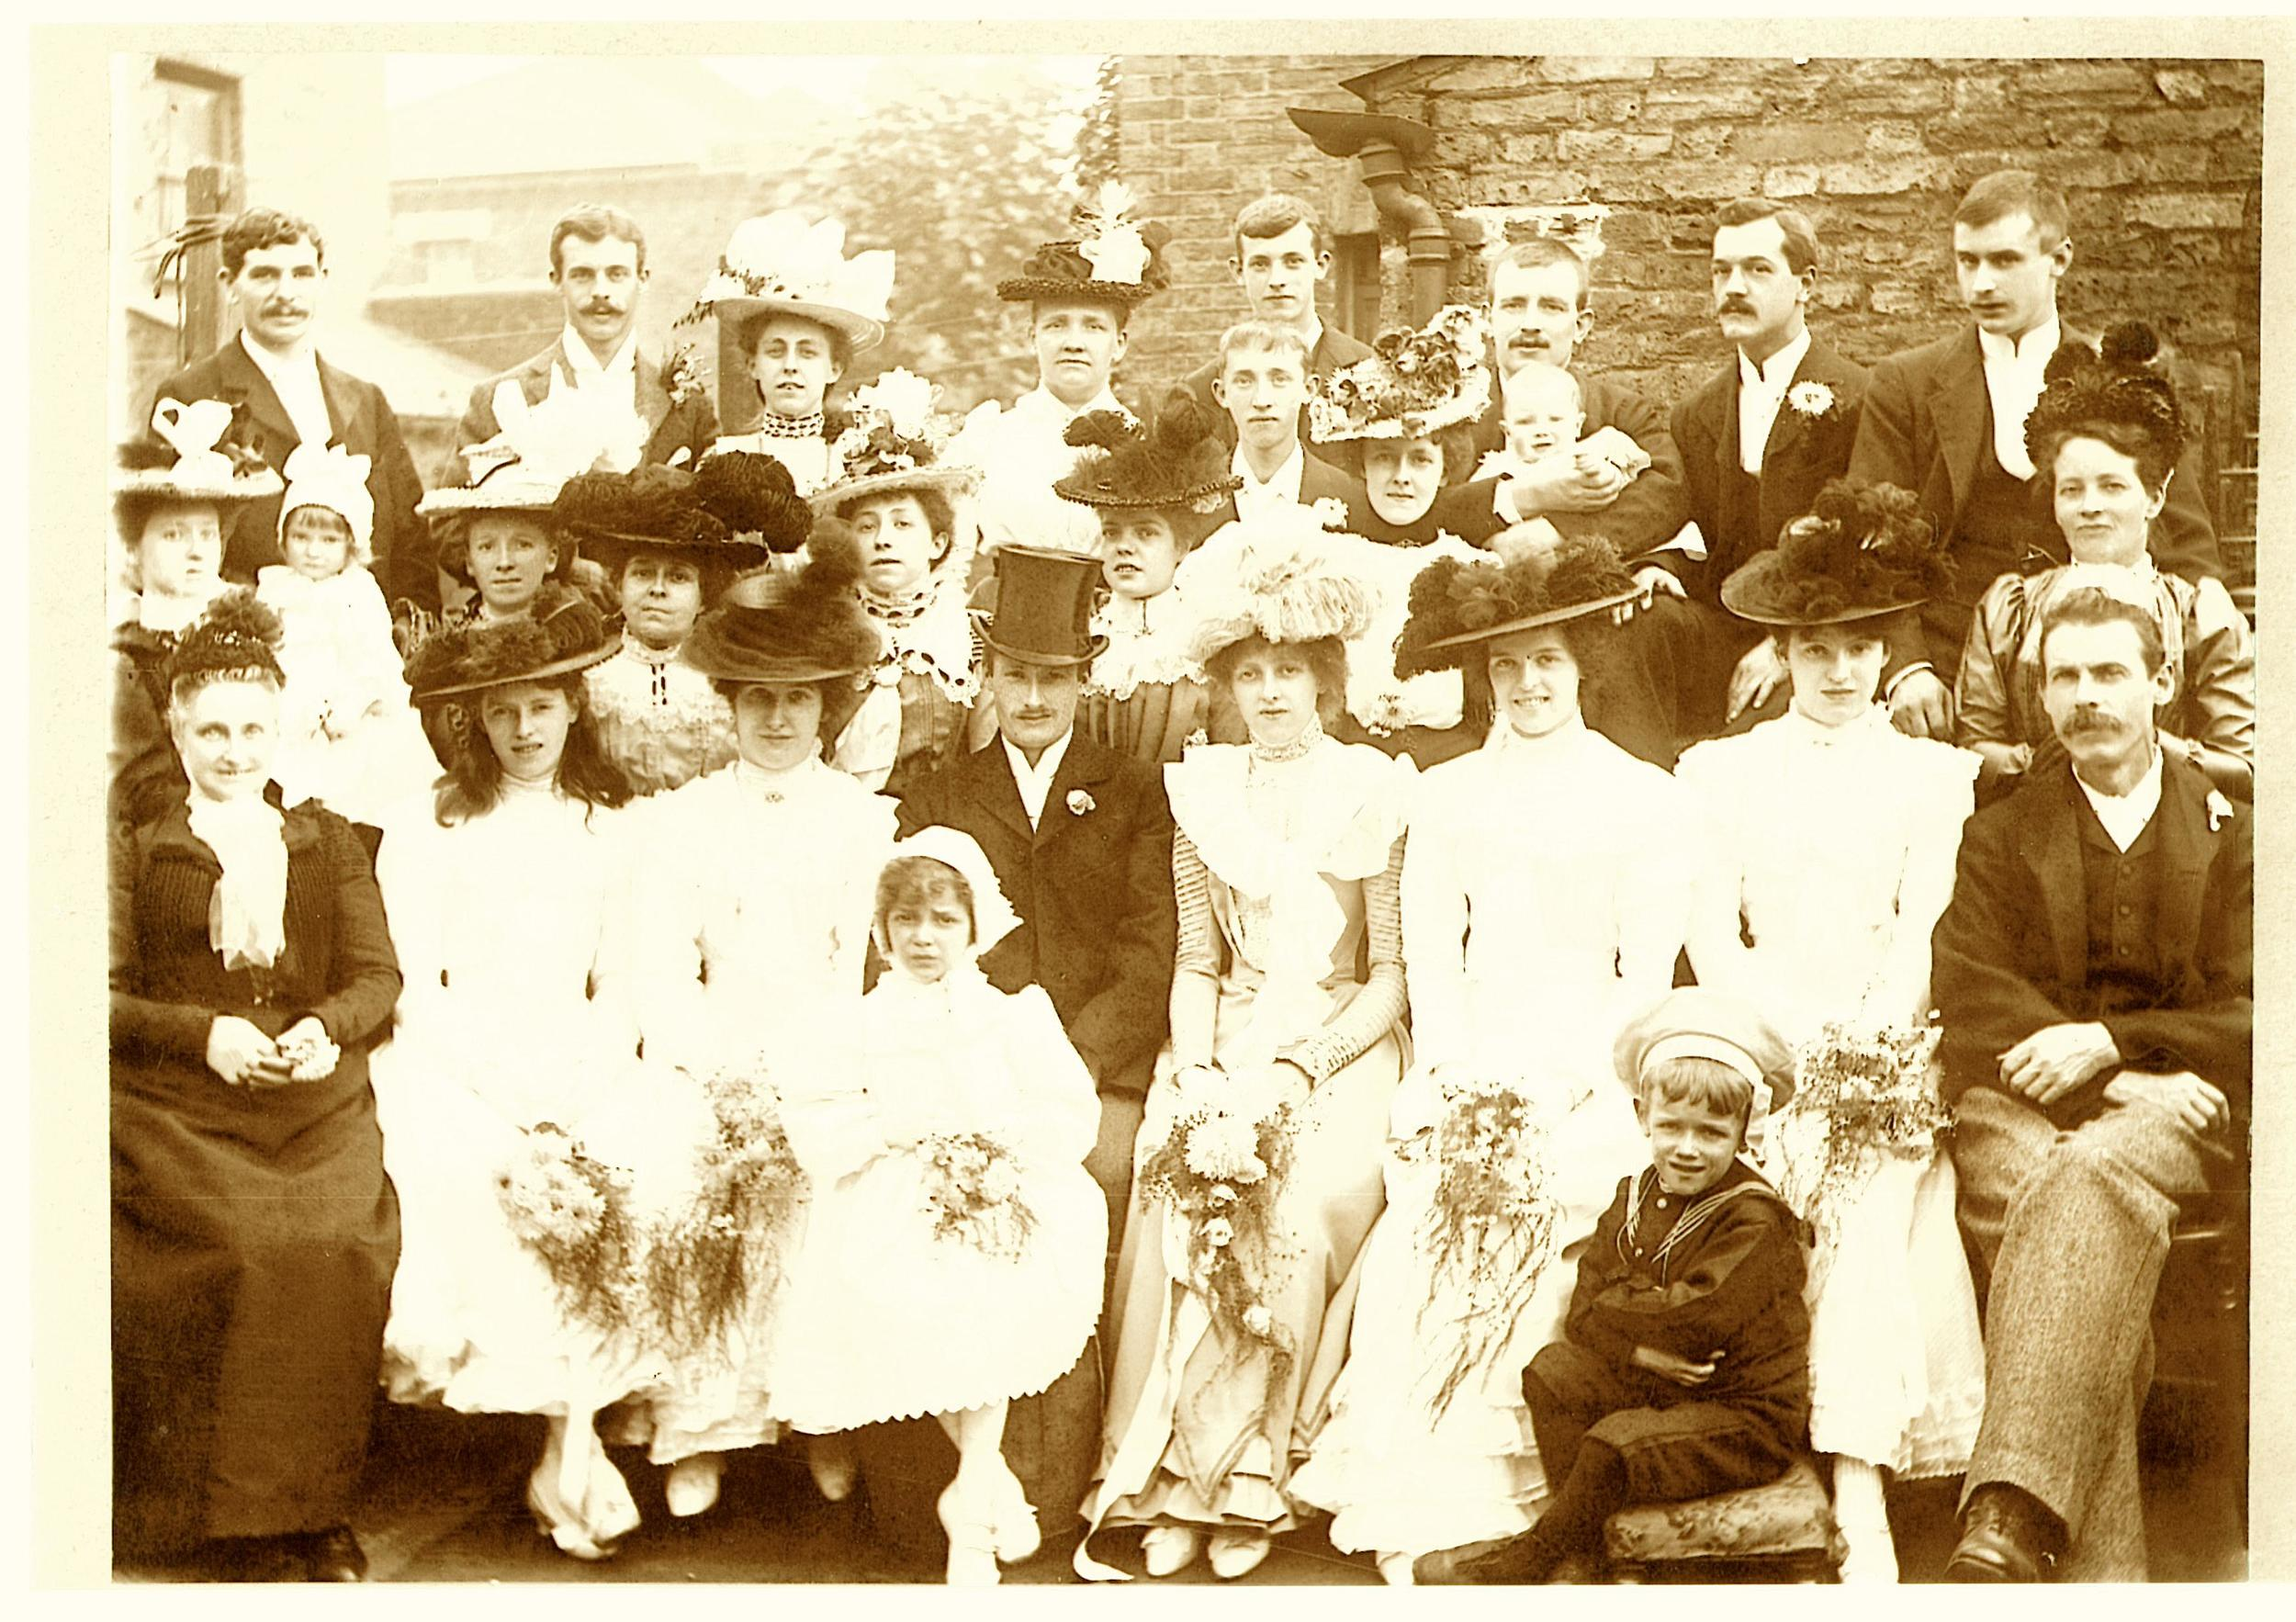 James is sitting on front row on the far right, and standing behind him is his wife Emma.The bride is my great grandma,James' daughter Emma Evans Threlkeld, and the groom is my great grandpa,John Way. I love the rakish angle of his hat!This photograph was taken on 15th September 1901. In two days' time it will be their 144th wedding anniversary.